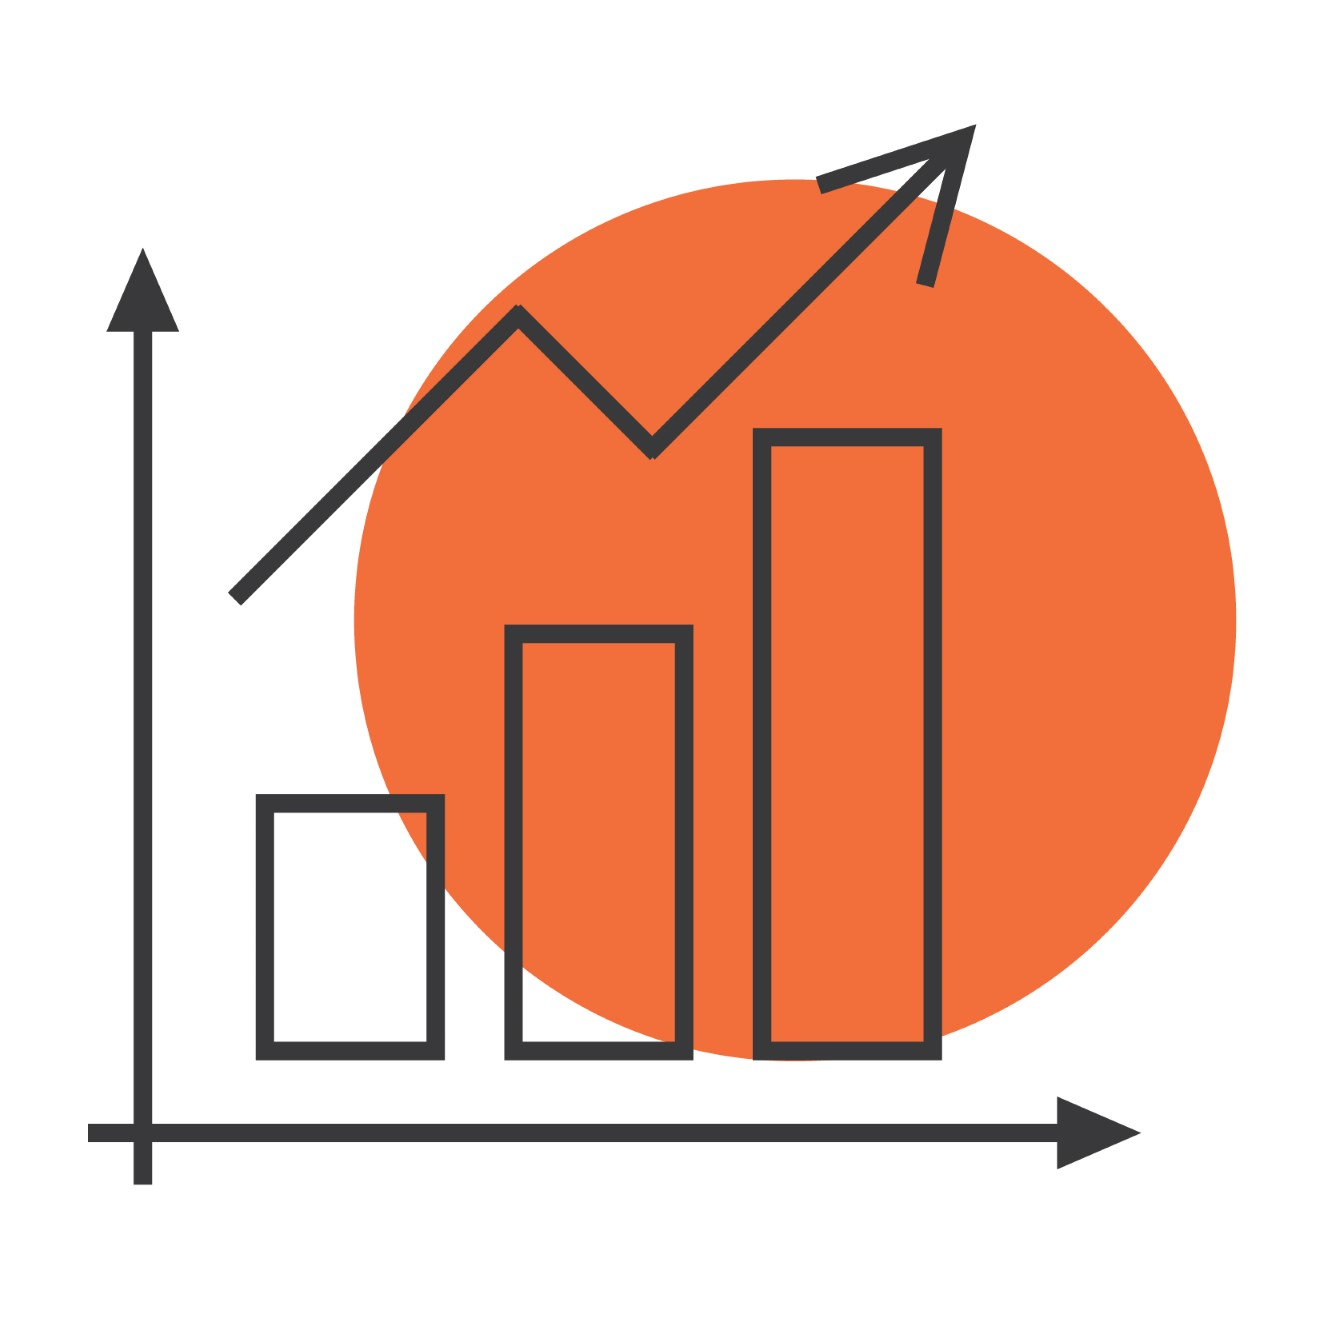 financial chart icon